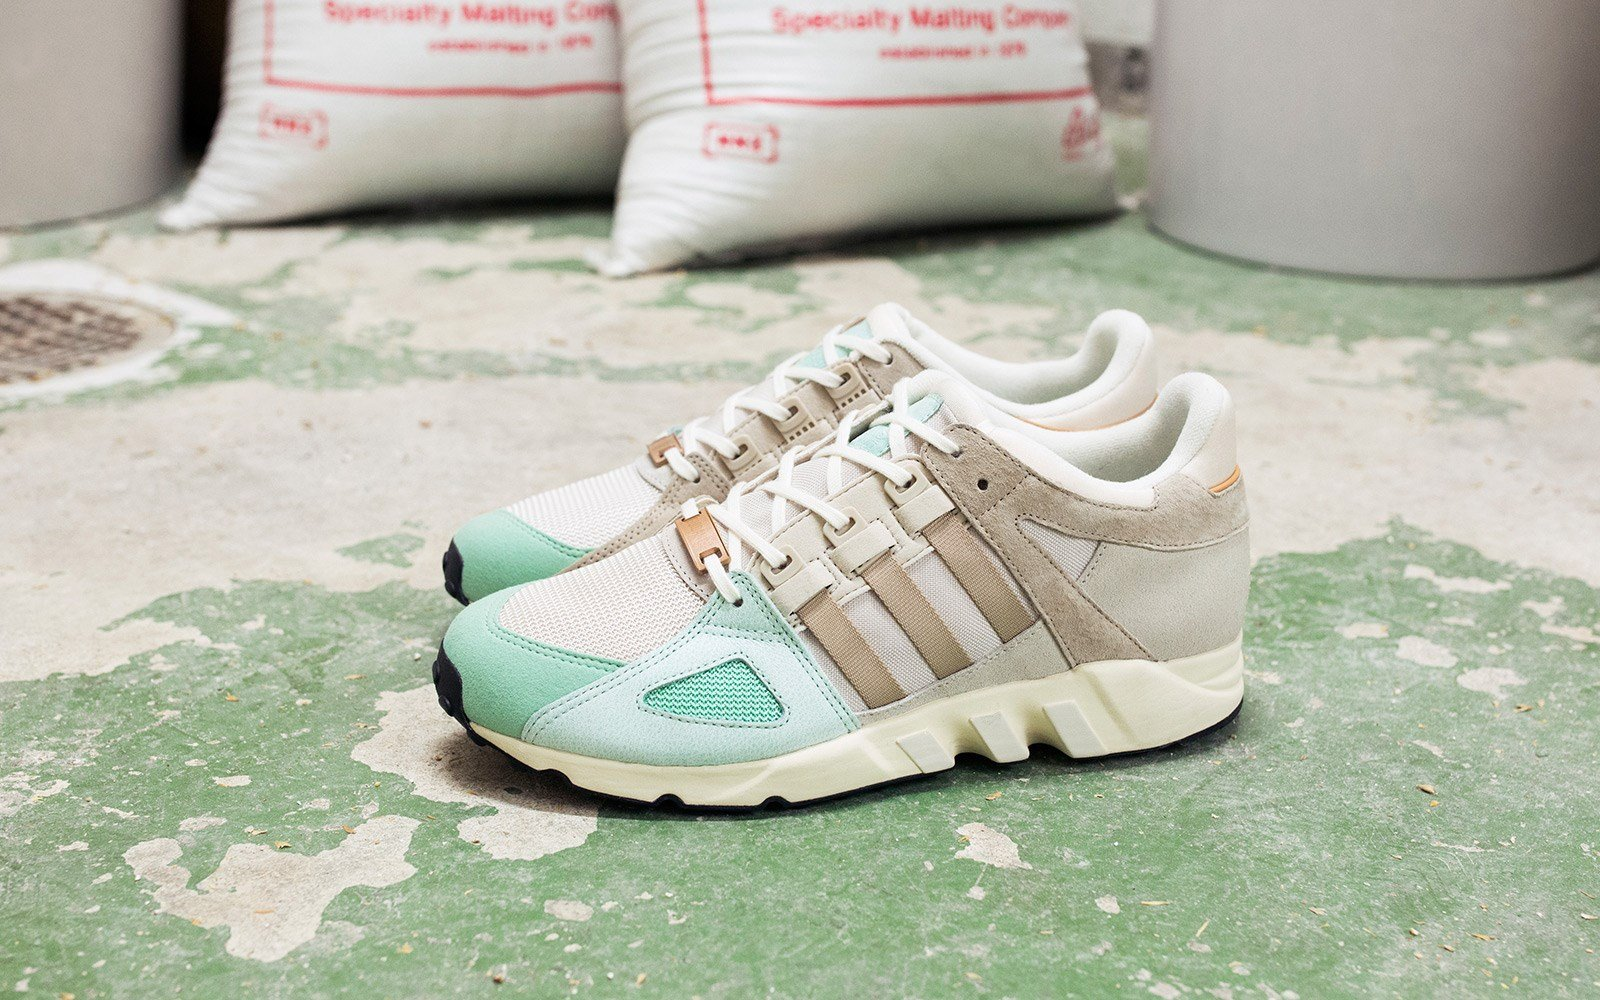 check out 081c1 7f434 adidas EQT Running Guidance 93 - S82532 - Sneakersnstuff  sneakers   streetwear online since 1999